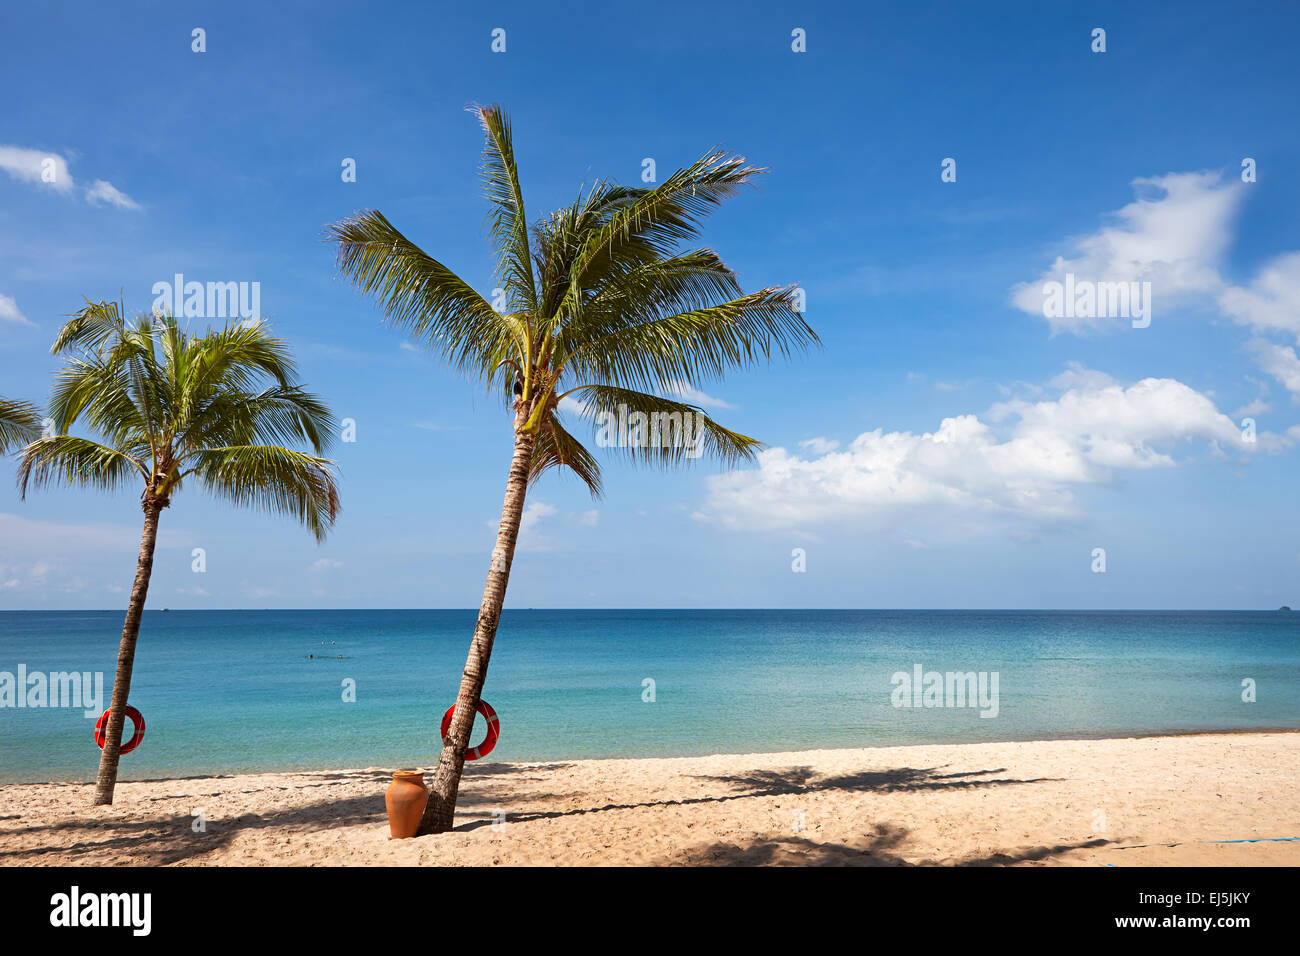 Palm trees growing on the sandy beach at Vinpearl Resort, Phu Quoc island, Kien Giang Province, Vietnam. - Stock Image